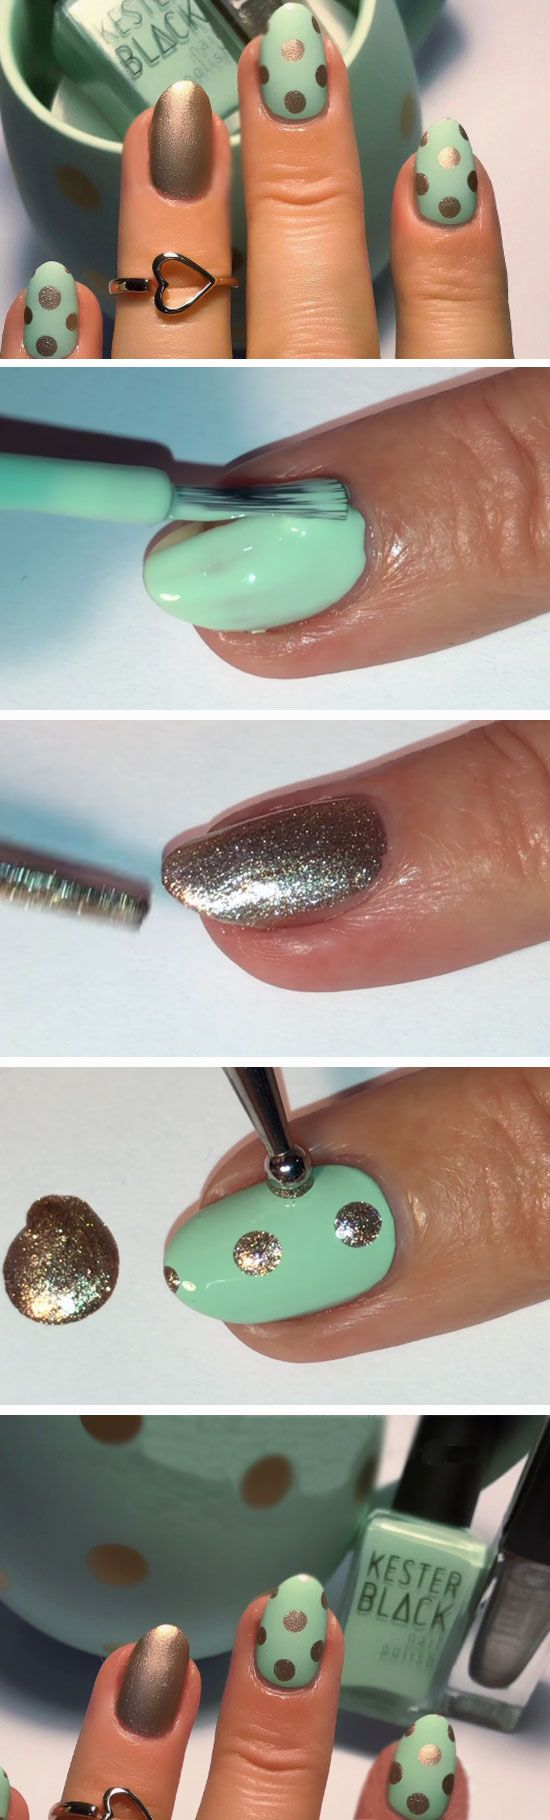 best Nails images on Pinterest Nail design Nail scissors and